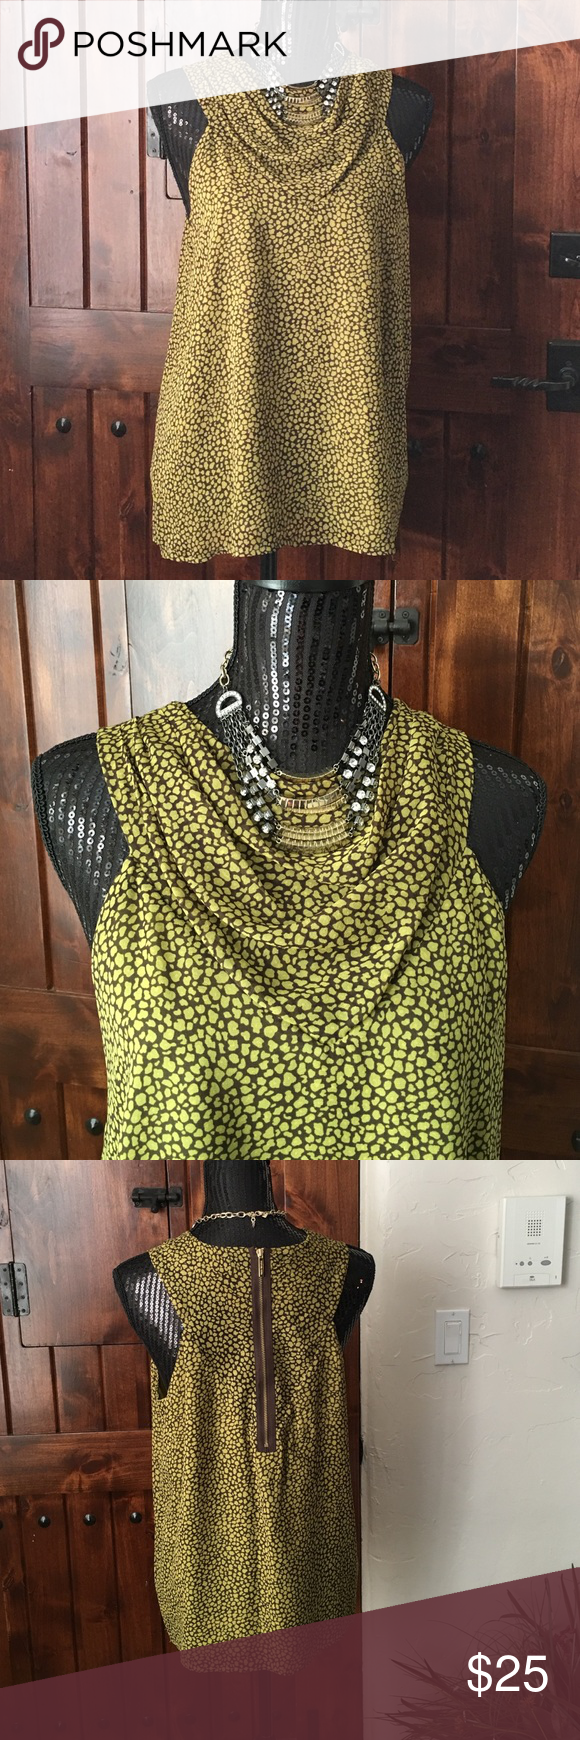 Michael Kors size 10, polyester .  GC $25.00 Michael Kors in great condition, fun shirt looks wonderful with jeans.  Size 10 in 100% polyester.  Great green and brown colors.  $25.00. Michael Kors Tops Camisoles